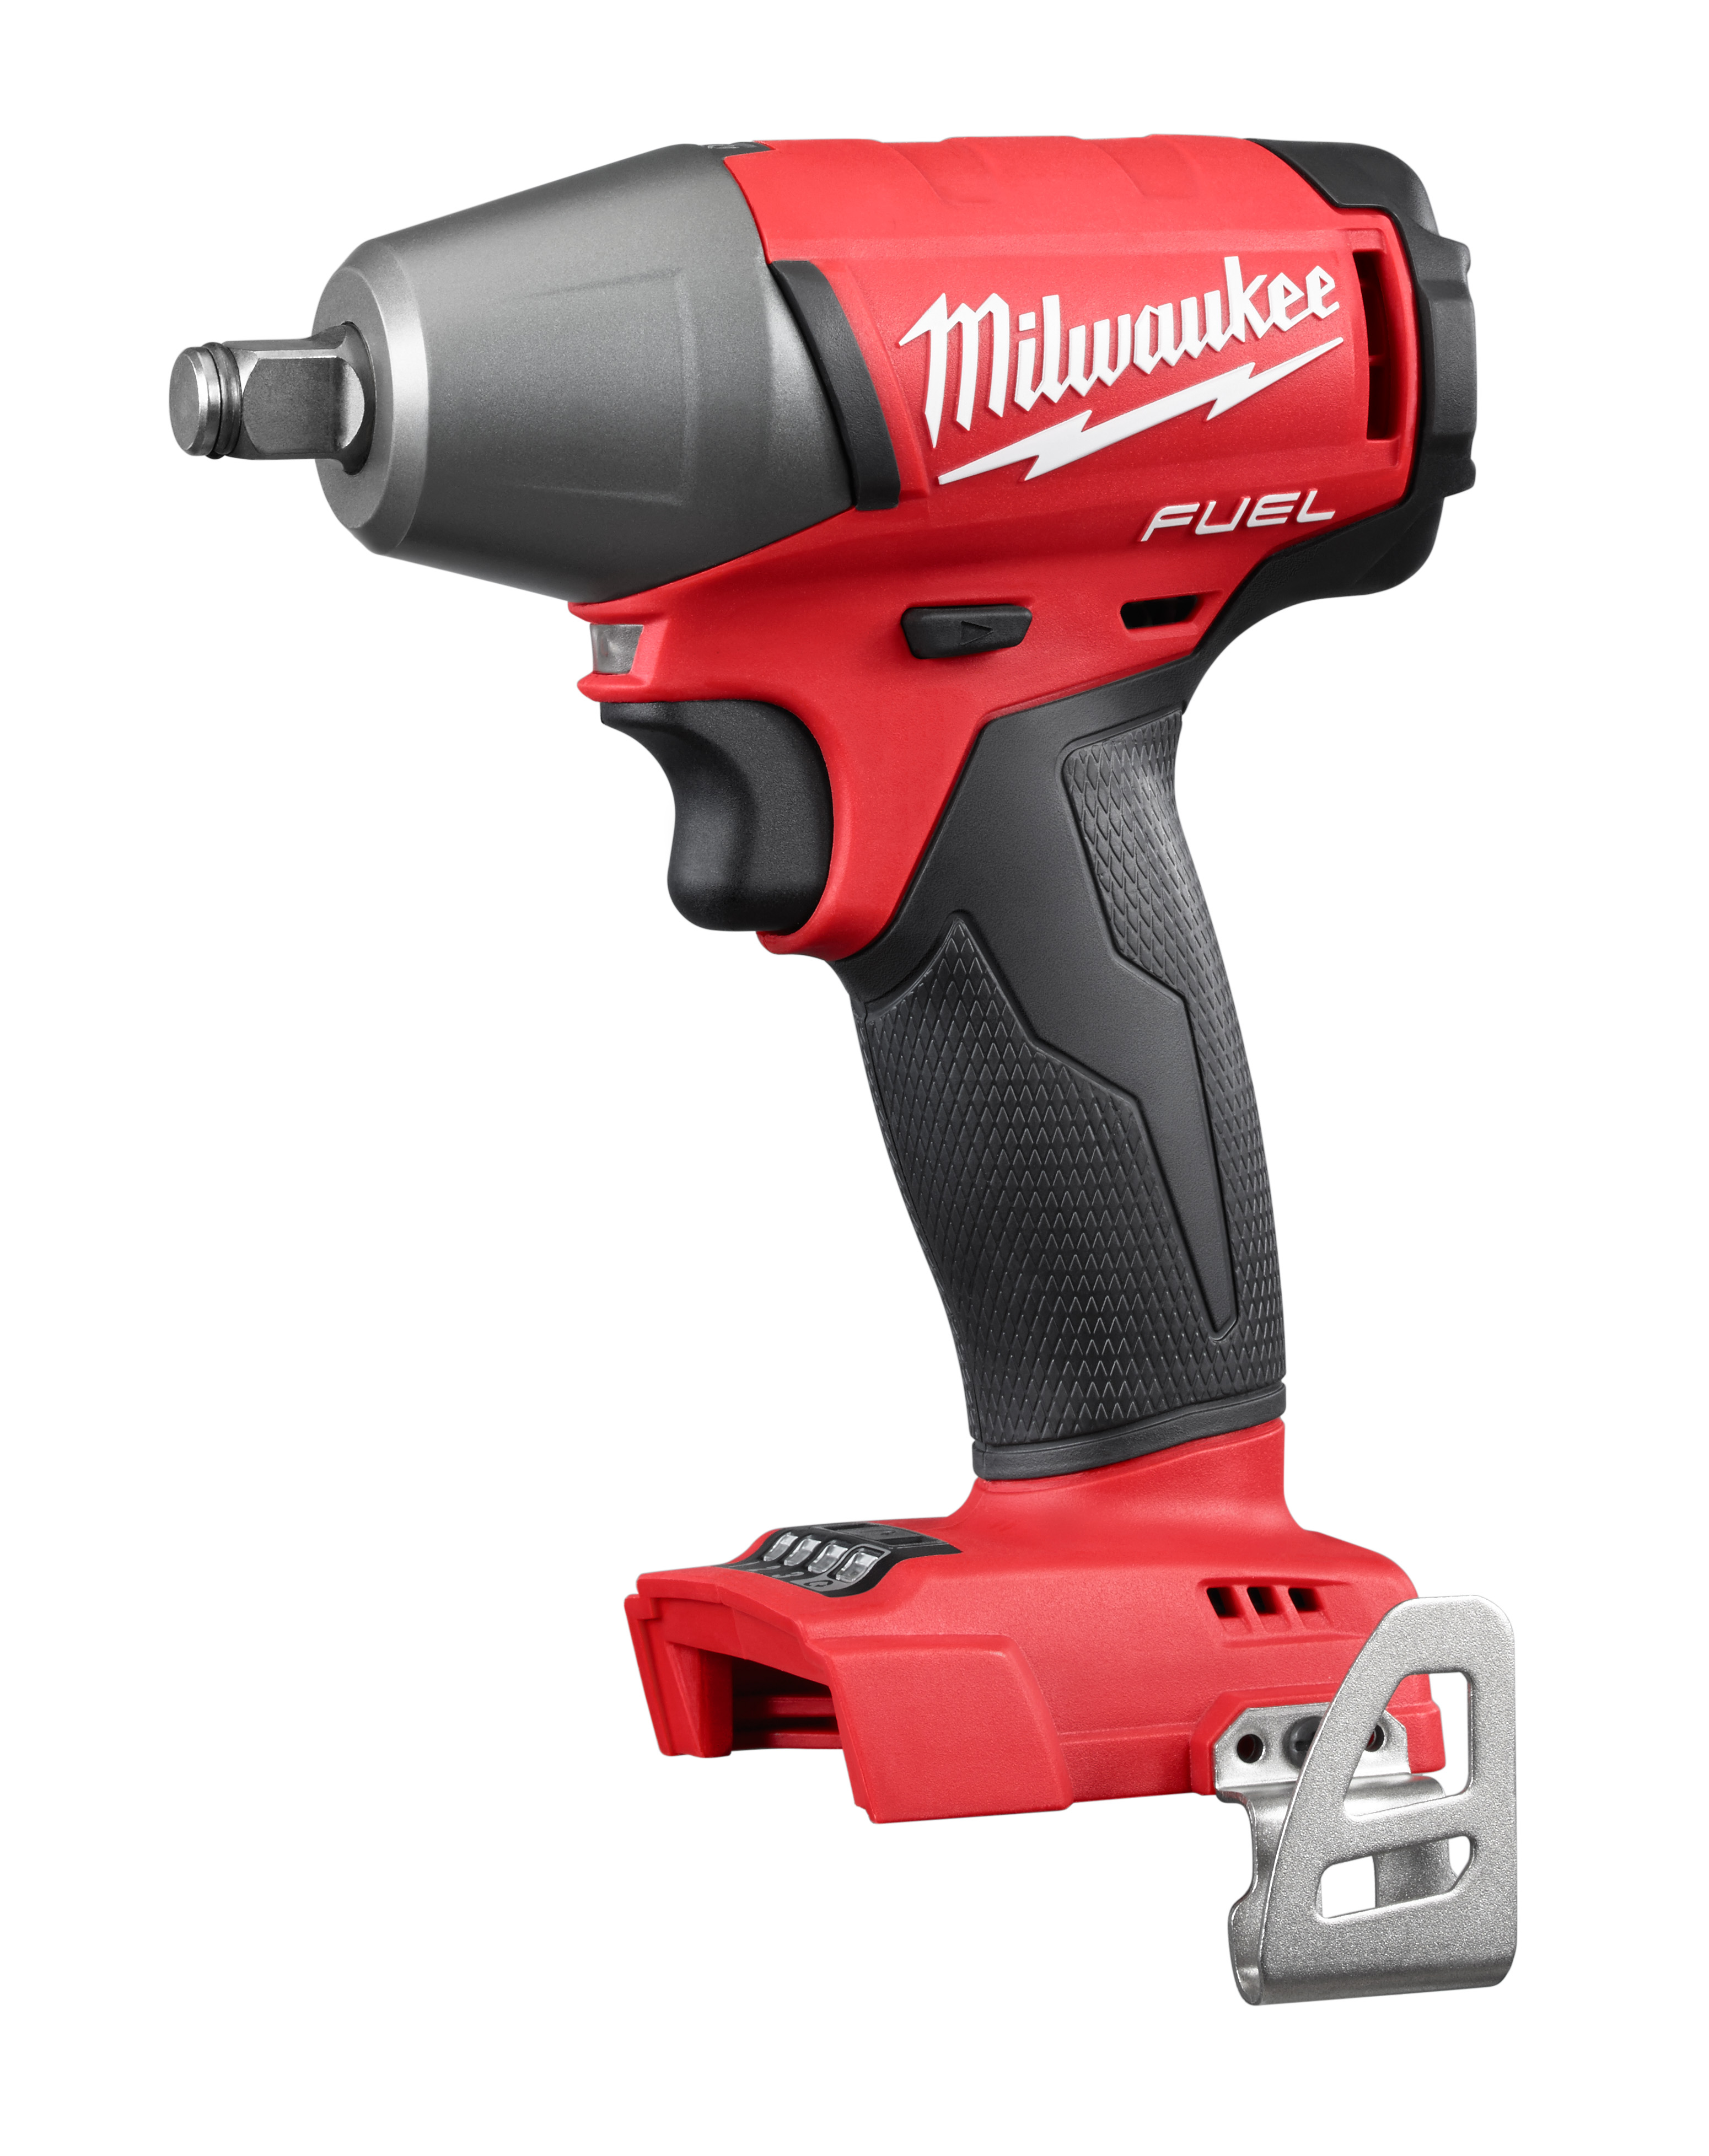 Milwaukee® M18™ FUEL™ 2755B-20 Compact Cordless Impact Wrench With Pin Detent, 1/2 in, 0 to 3200 bpm, 220 ft-lb Torque, 18 VDC, 6.1 in OAL